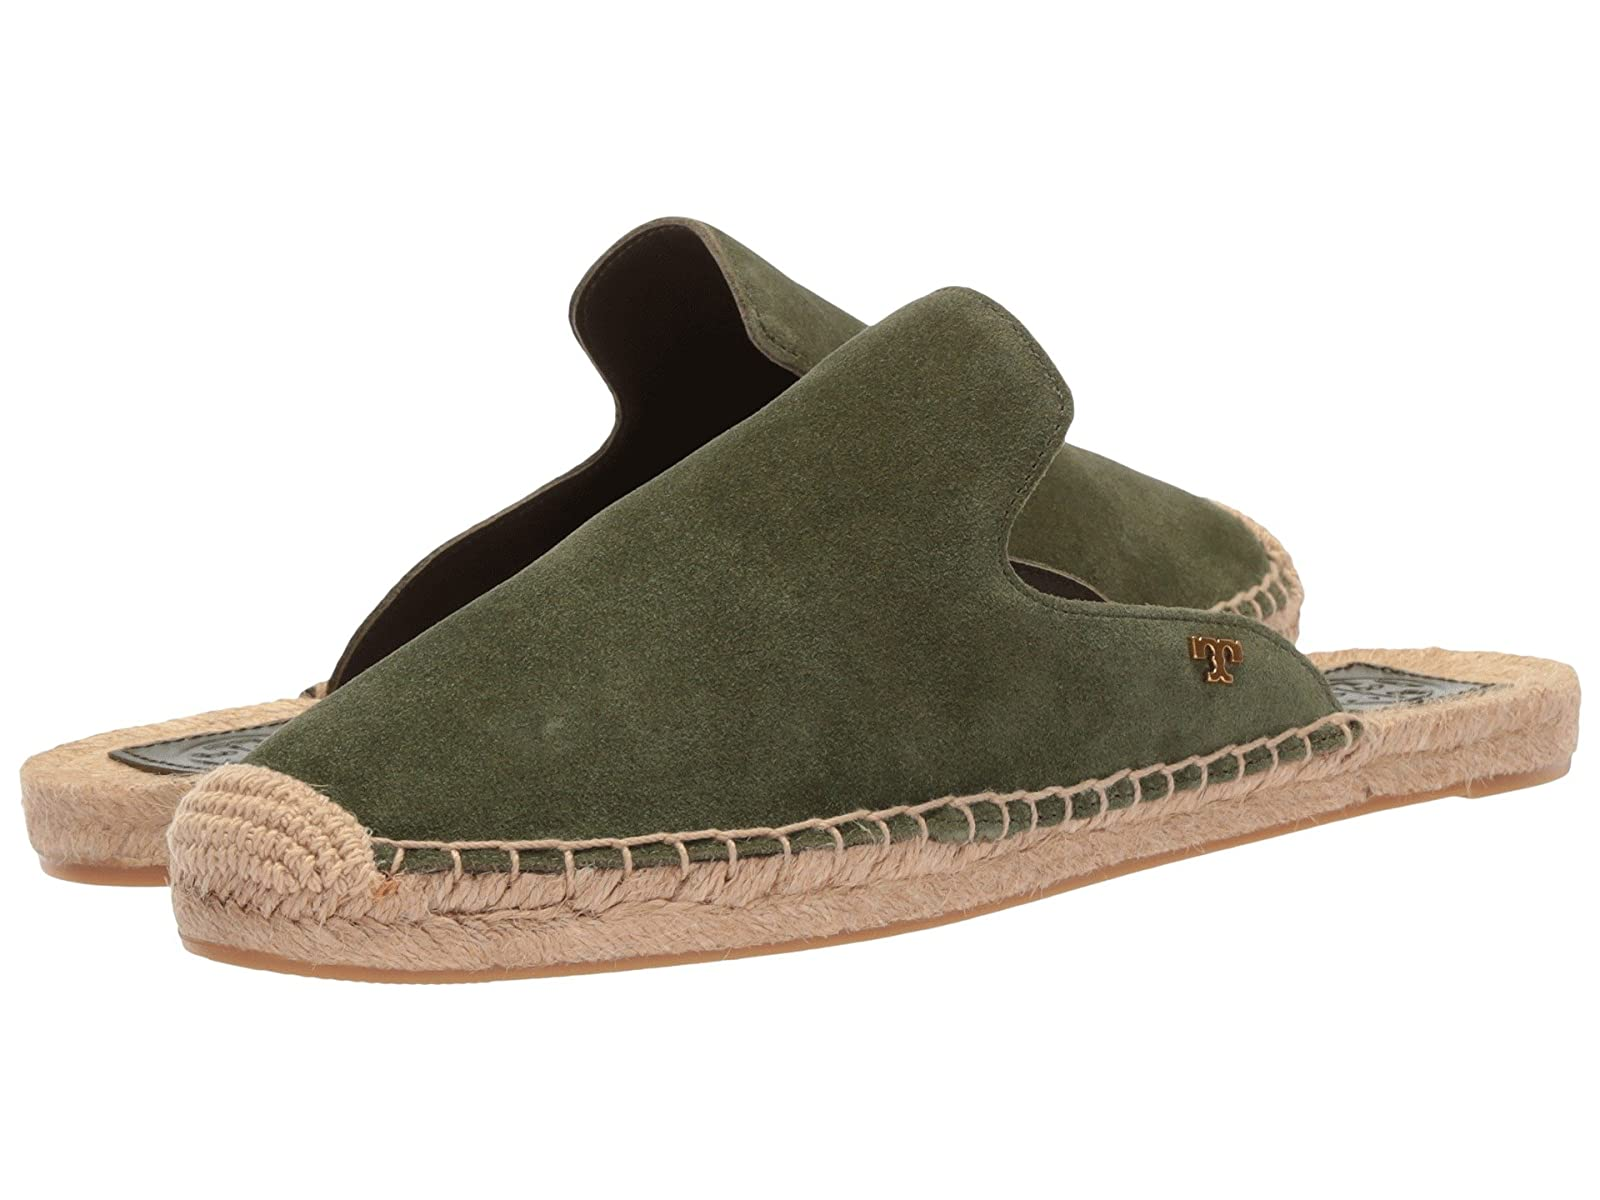 Tory Slide Burch Max Espadrille Flat Slide Tory < Outstanding features <Man's/Woman's 369ced